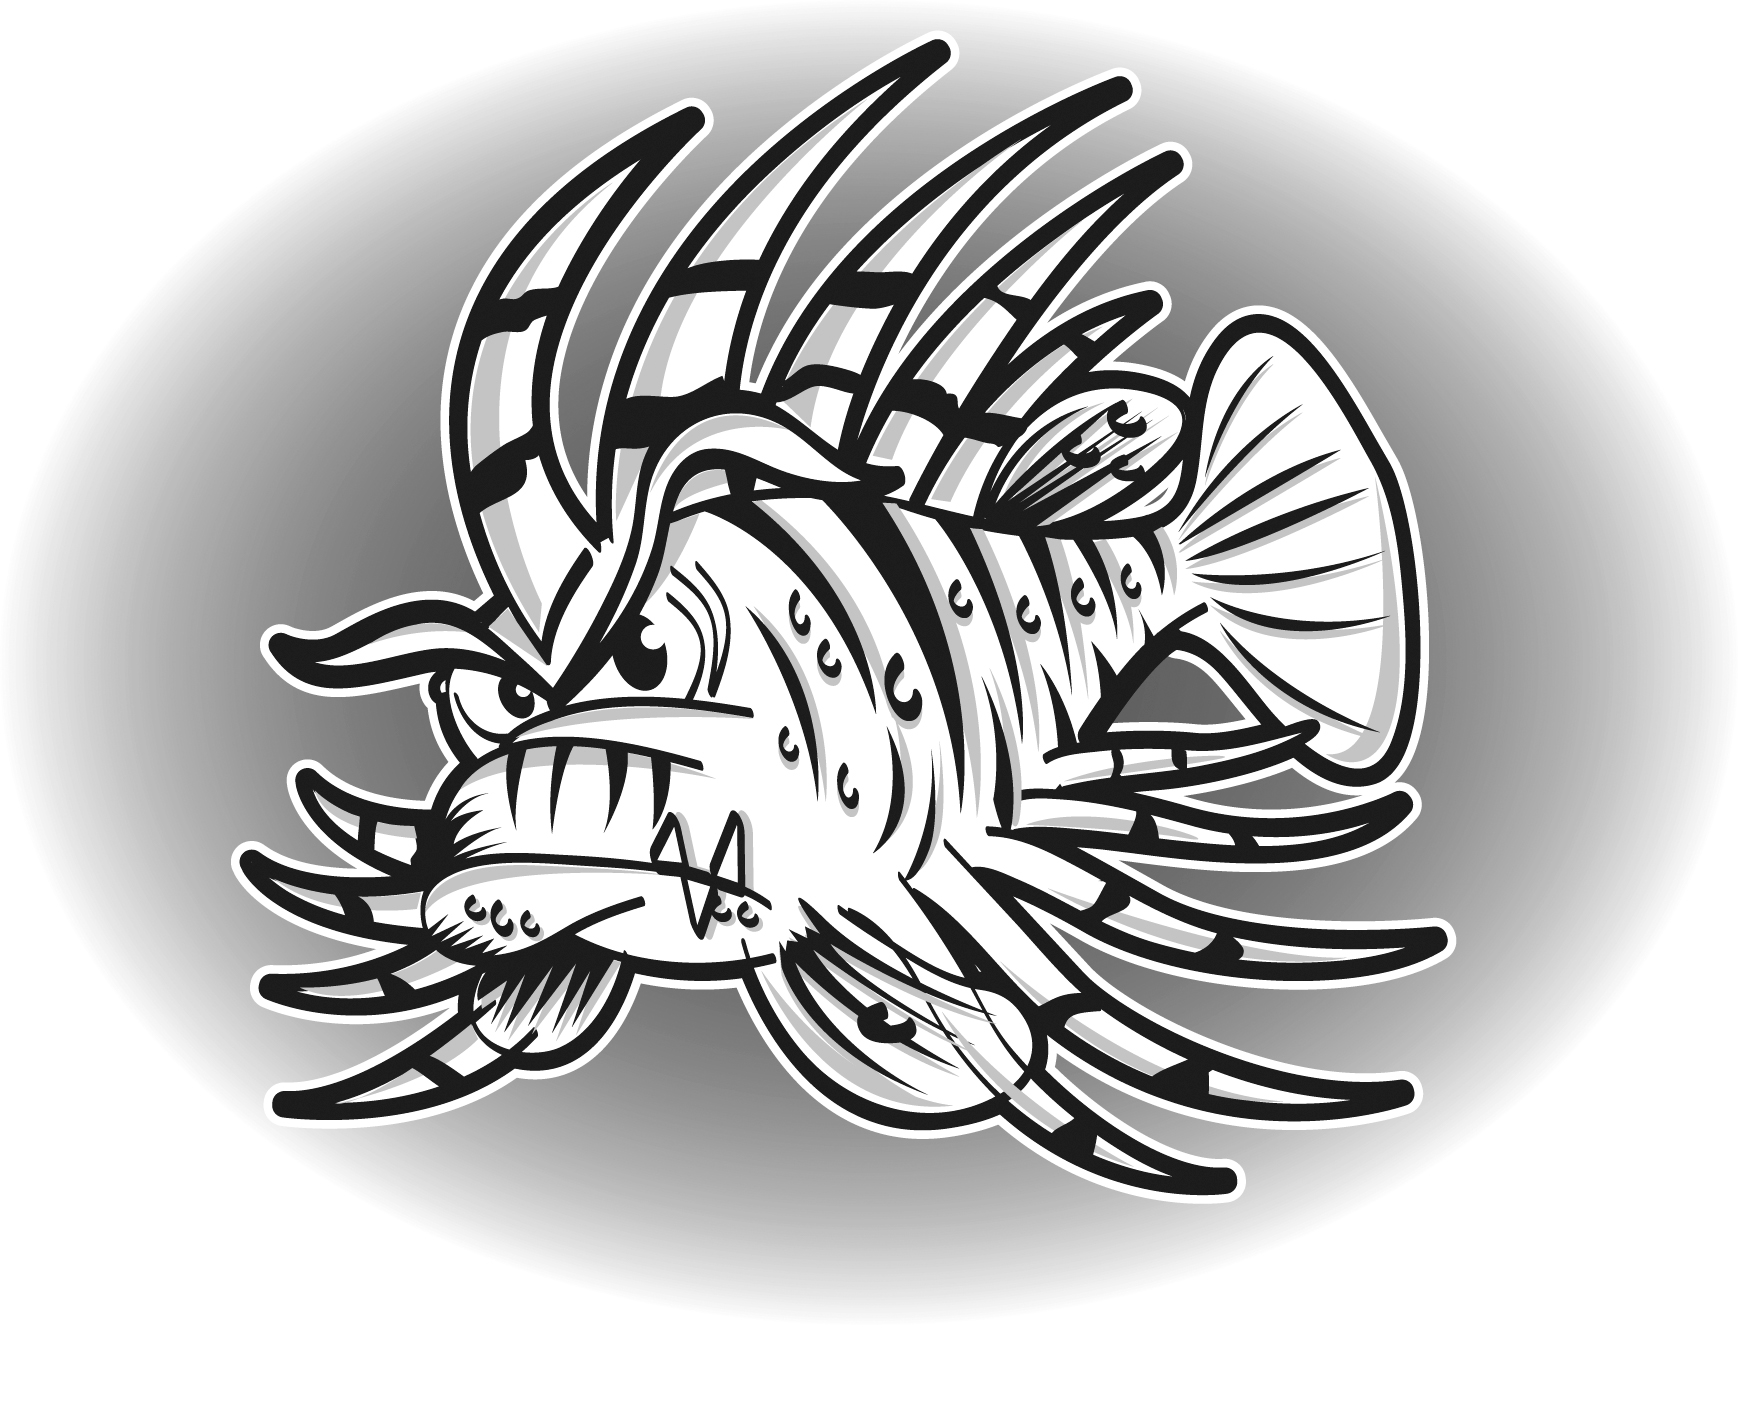 lionfish coloring page zentangle stylized cartoon zebrafish lionfishpterois lionfish coloring page